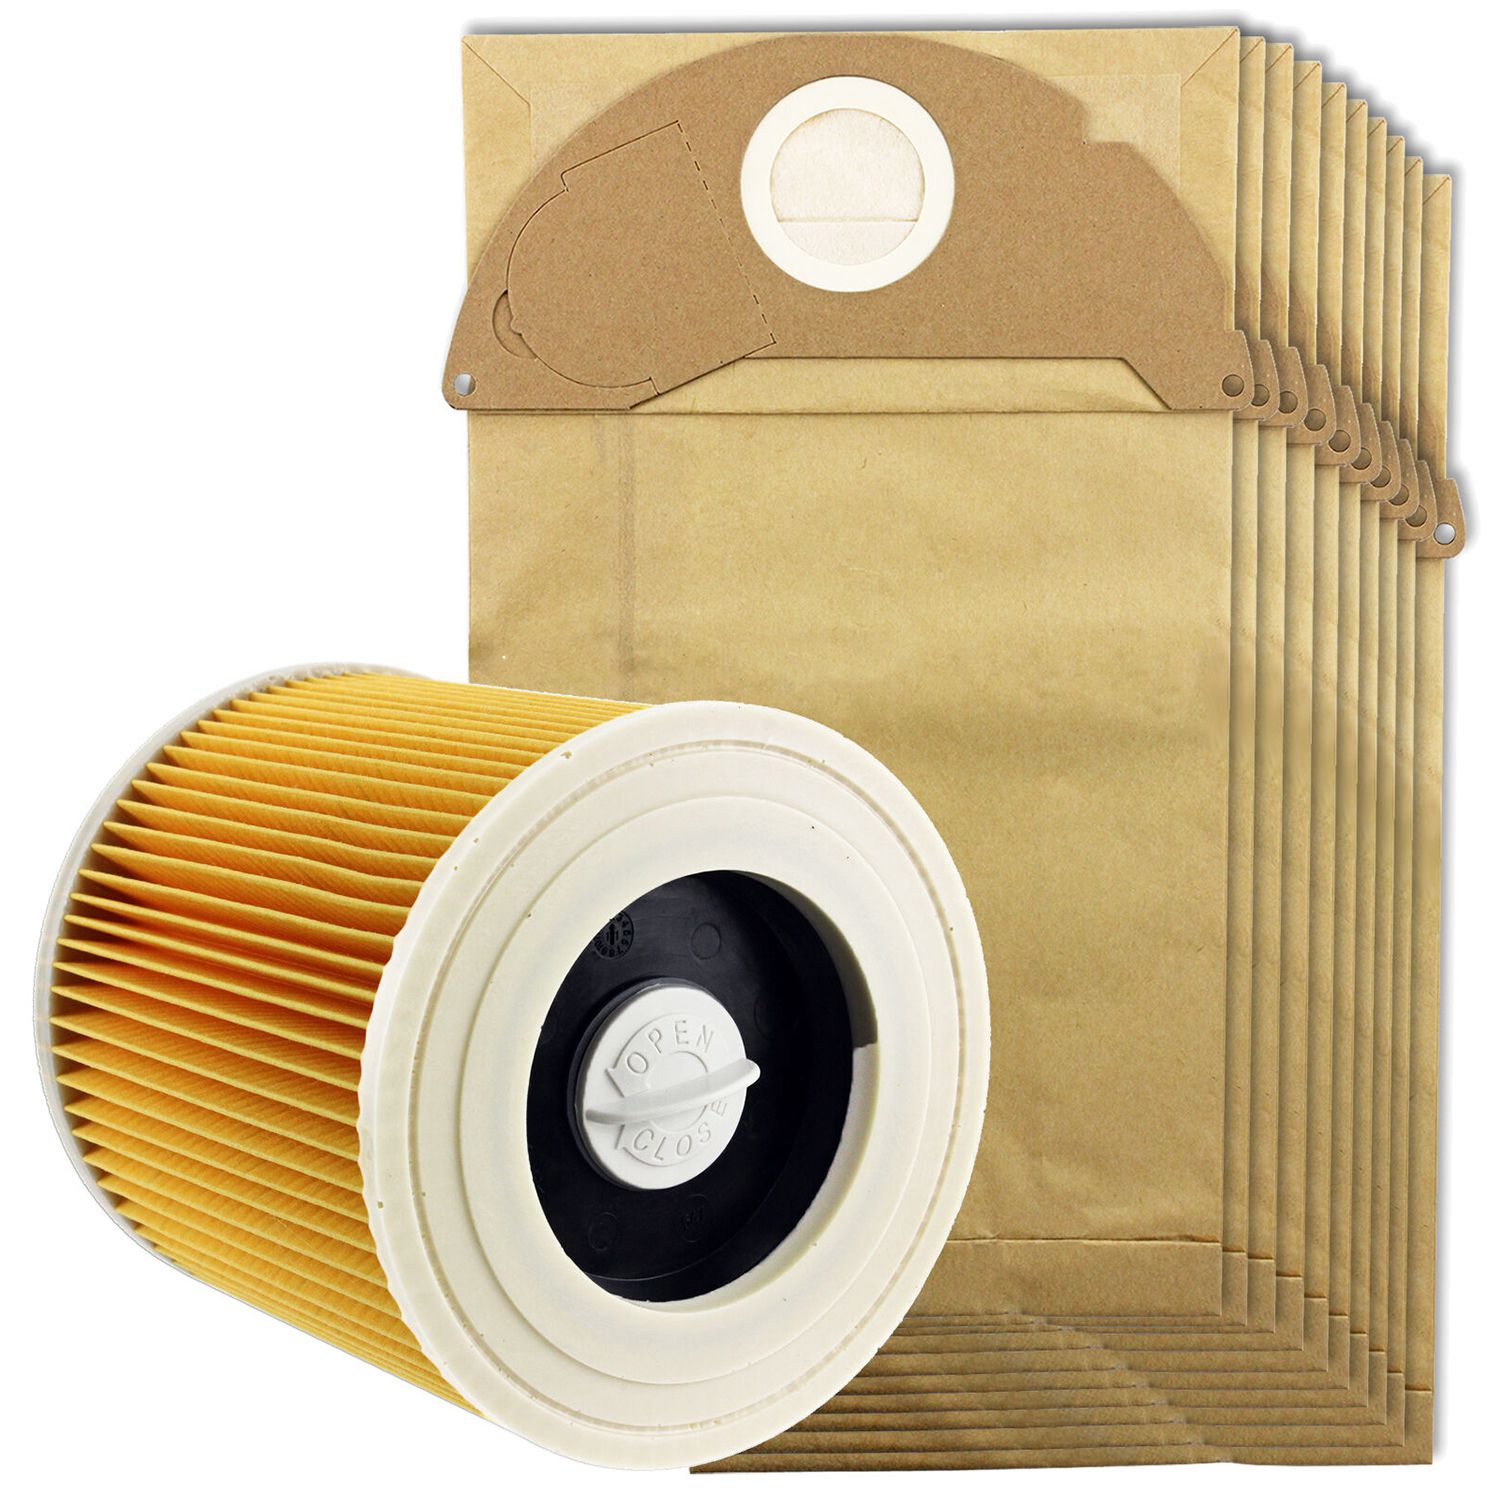 Vacuum Cleaner Filter Replacement Air Dust Filter Bag 10 Dust Bags For Karcher Cartridge HEPA Filter WD2250 WD3.200 MV2 MV3 WD3